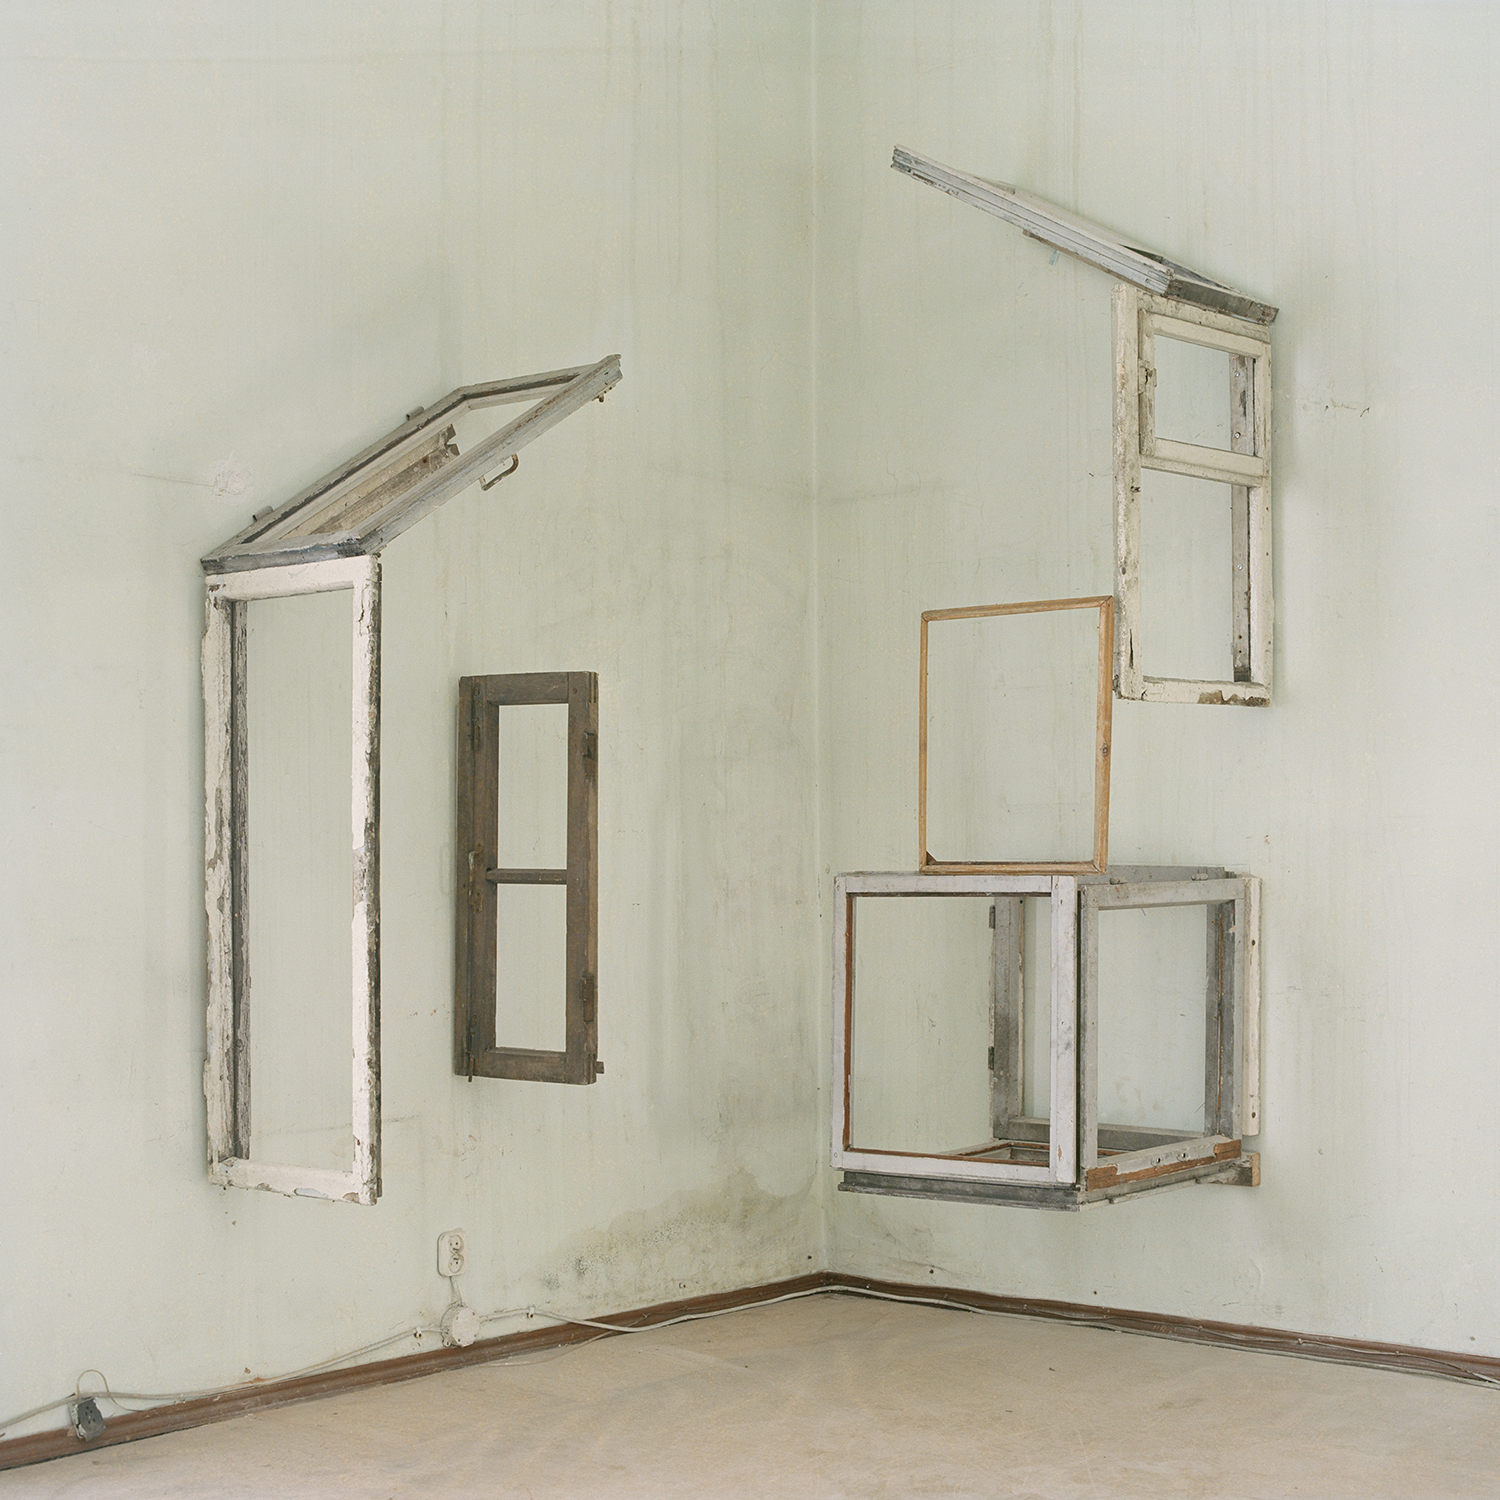 © Claire Laude, Ephemeral Intersects, 1, as 1 in 2